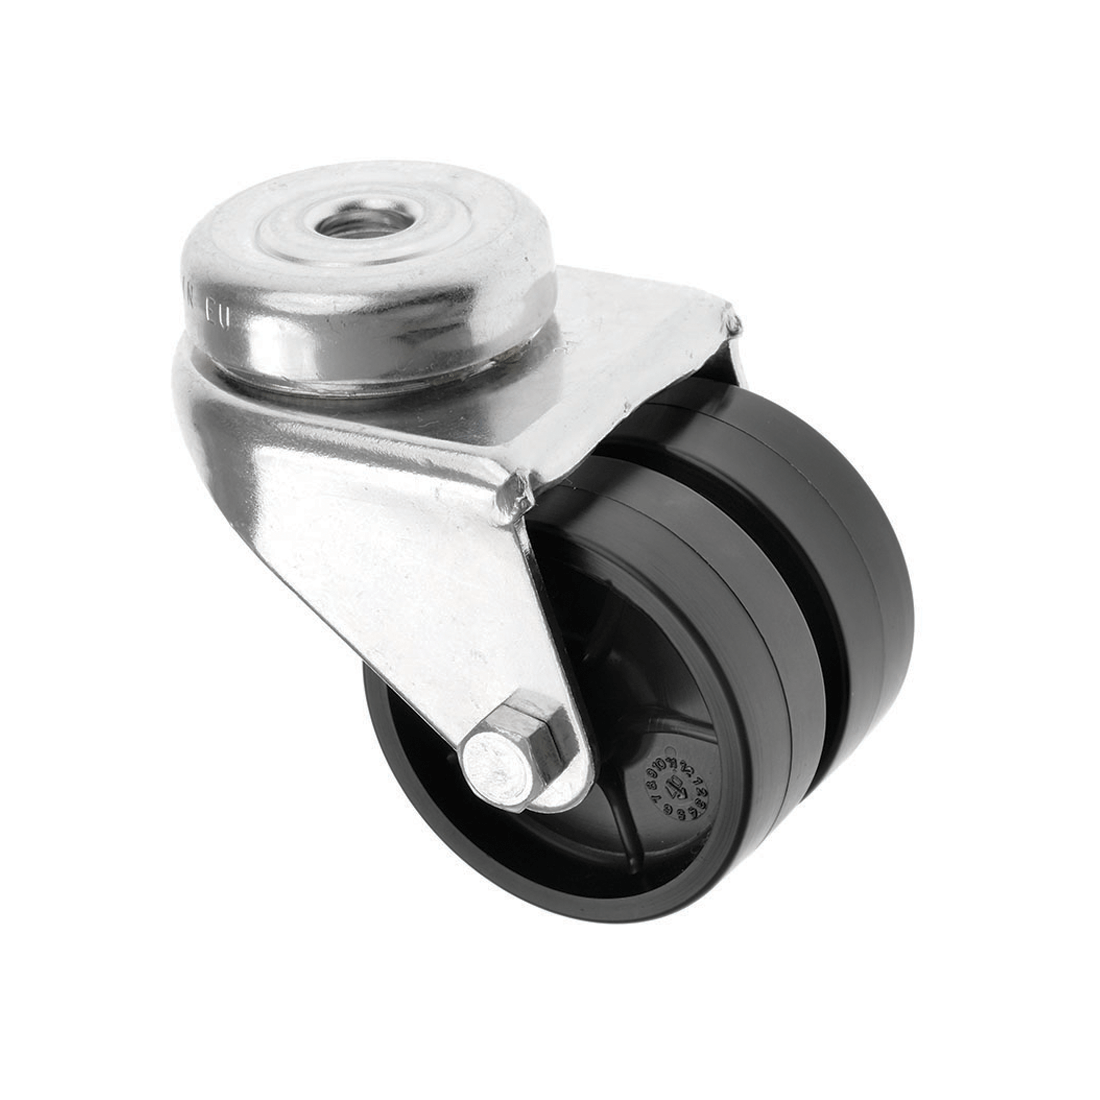 Bolt Hole Castors Plastic Wheel 360 Series